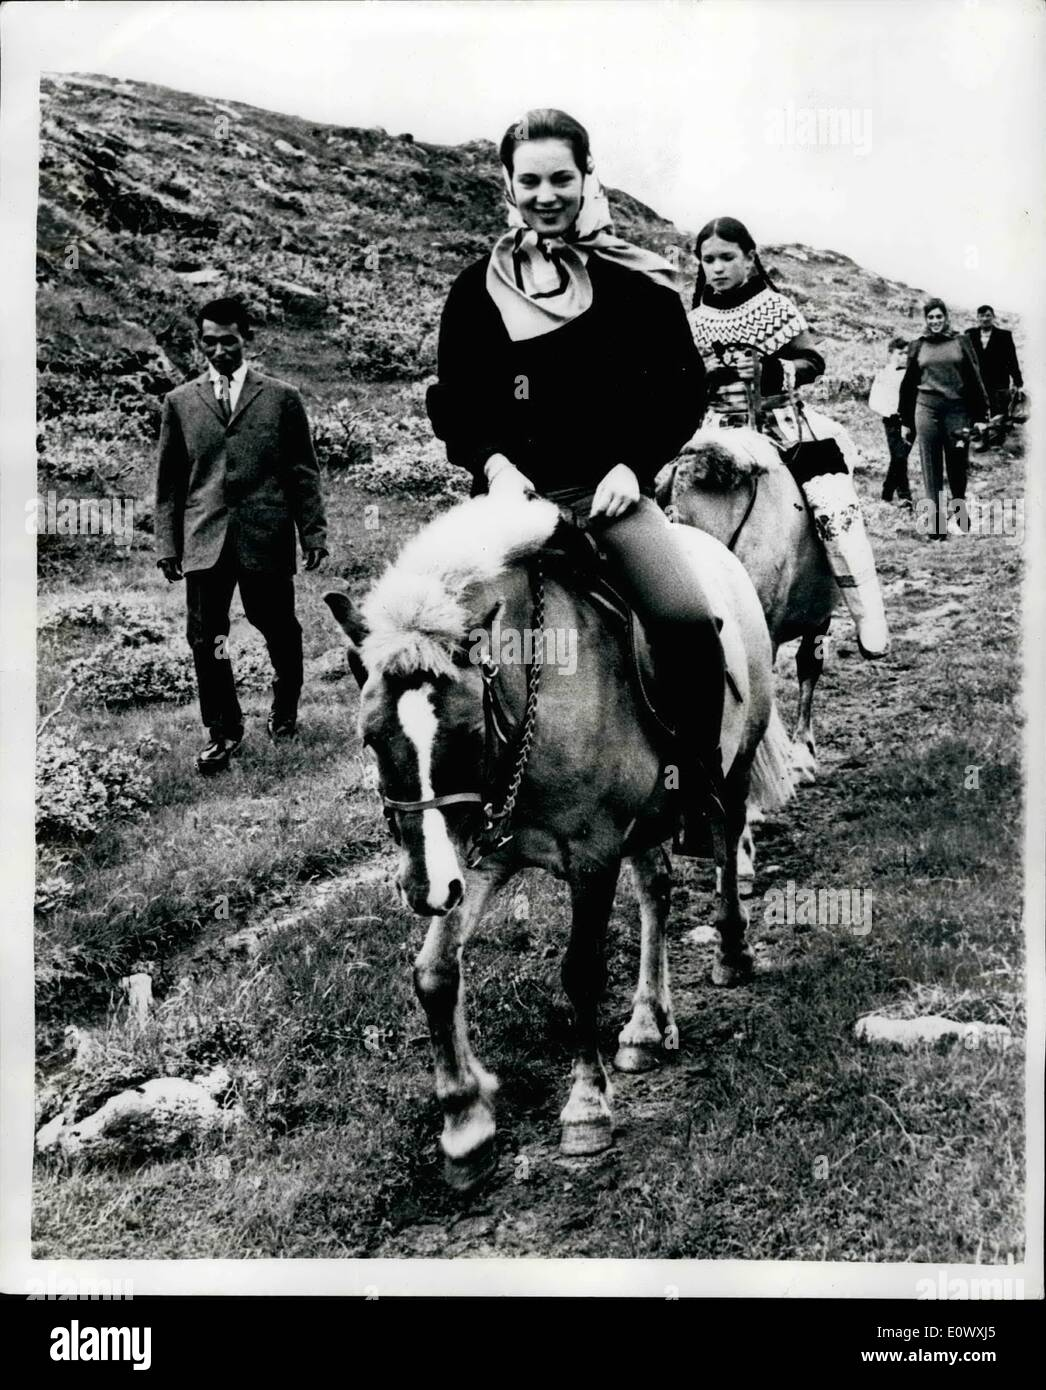 Aug. 08, 1964 - Princess Benedikte Goes Riding - in Greenland... H.R.H. Princess Benedikte of Denmark - is now on visit to Greenland for a tour of the various institutions of the country - children's homes - Red Cross centres etc... Most of her travelling is being done on horse back - owing to the nature of the country side. Keystone Photo Shows: Princess Benedikte during her visit to Quaisartut... Riding behind the Princess is the daughter of the local shepherd. - Stock Image